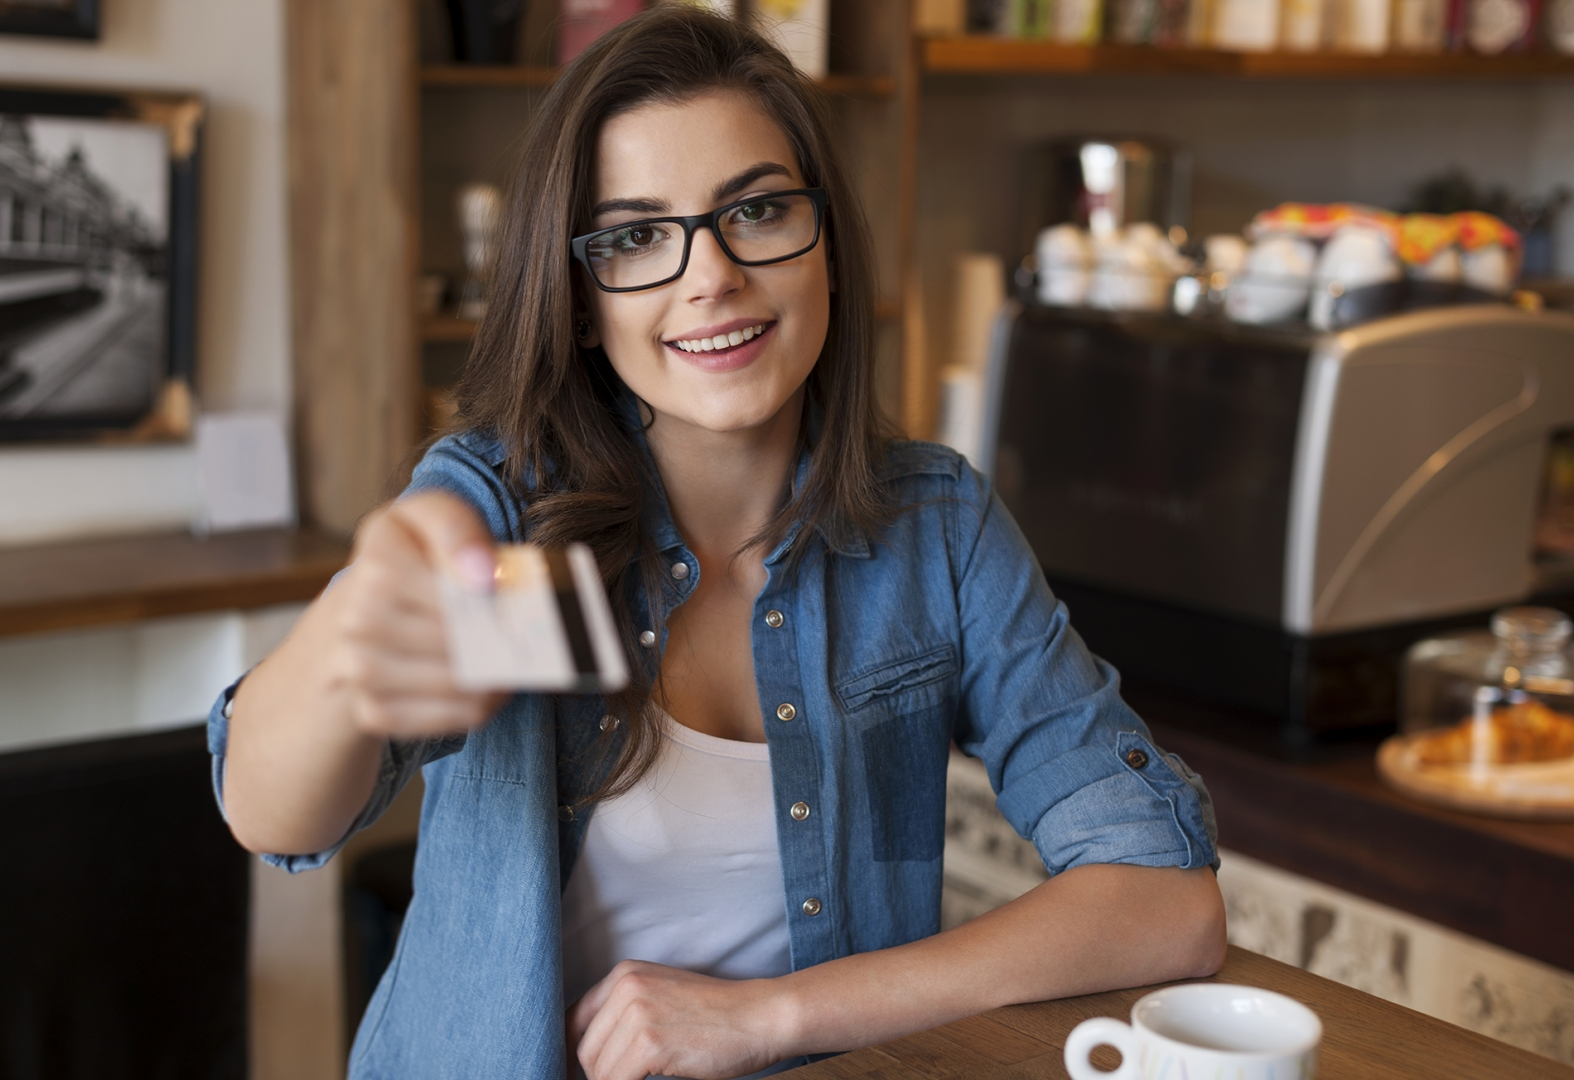 Girl holding credit card and smiling